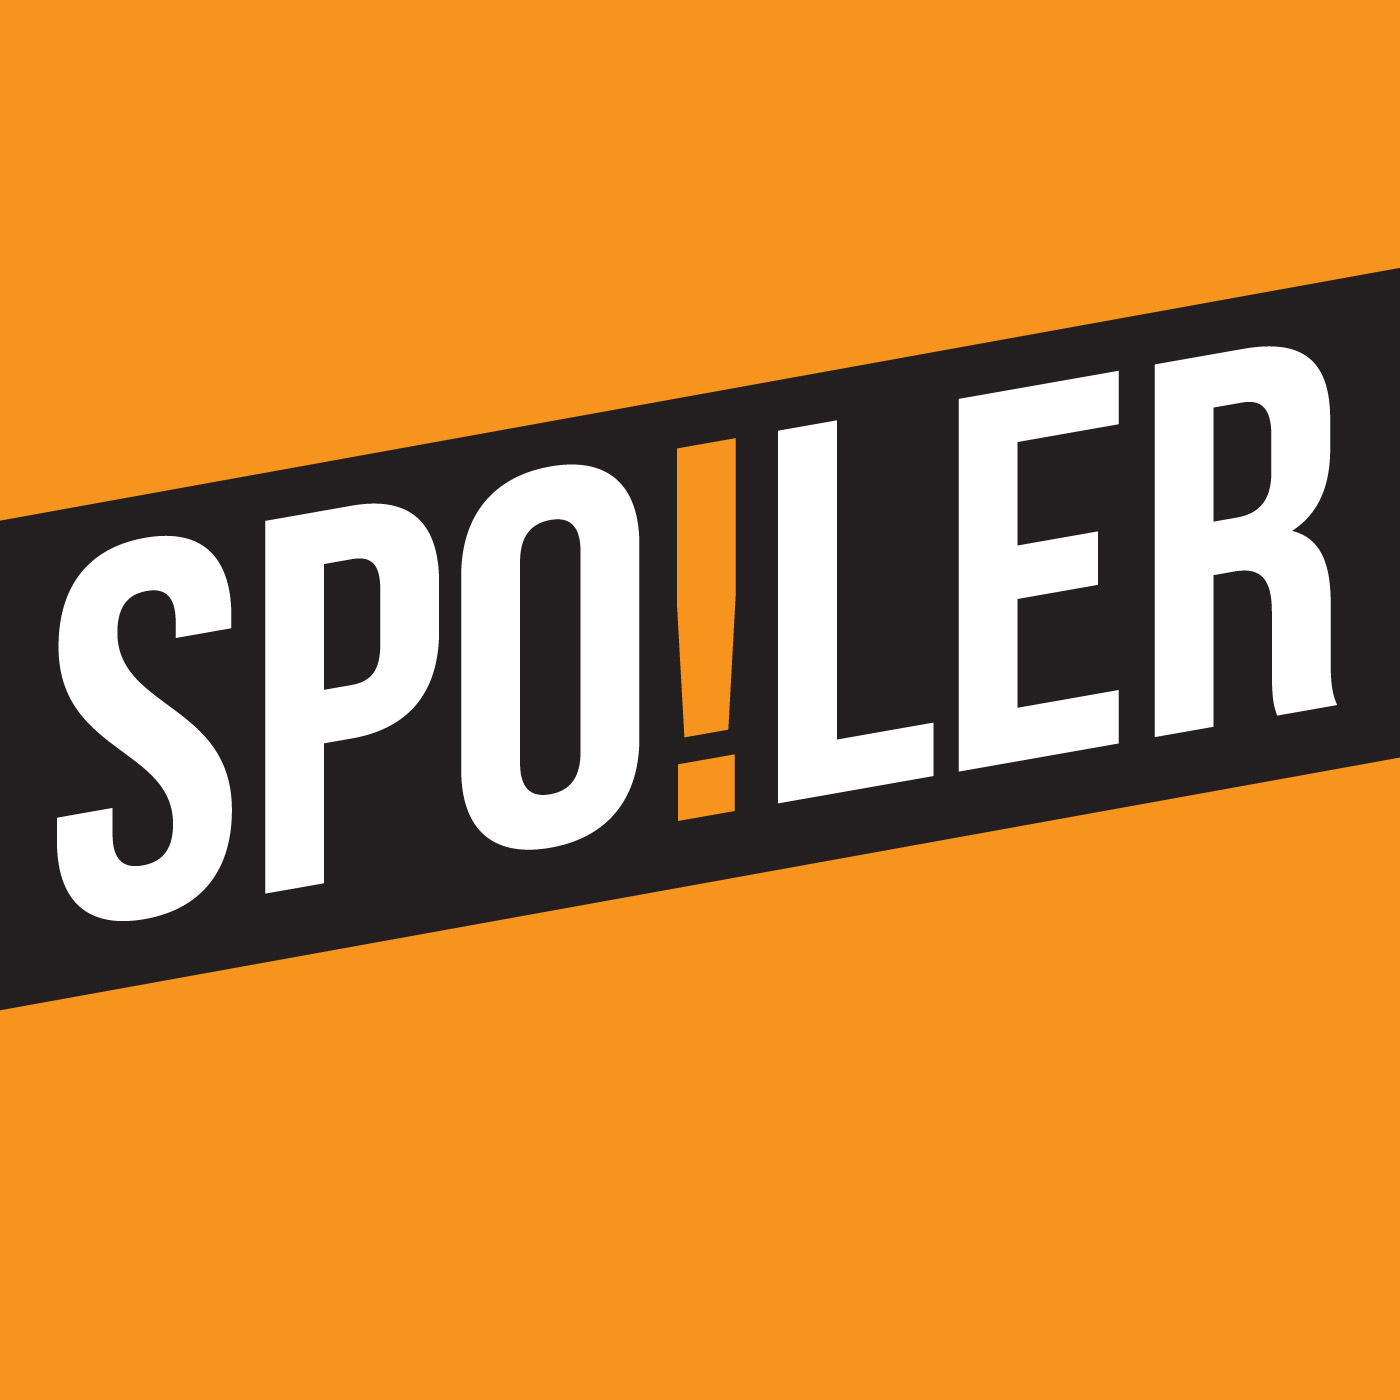 SPOILER: Reviewing movies, books & TV shows in their entirety